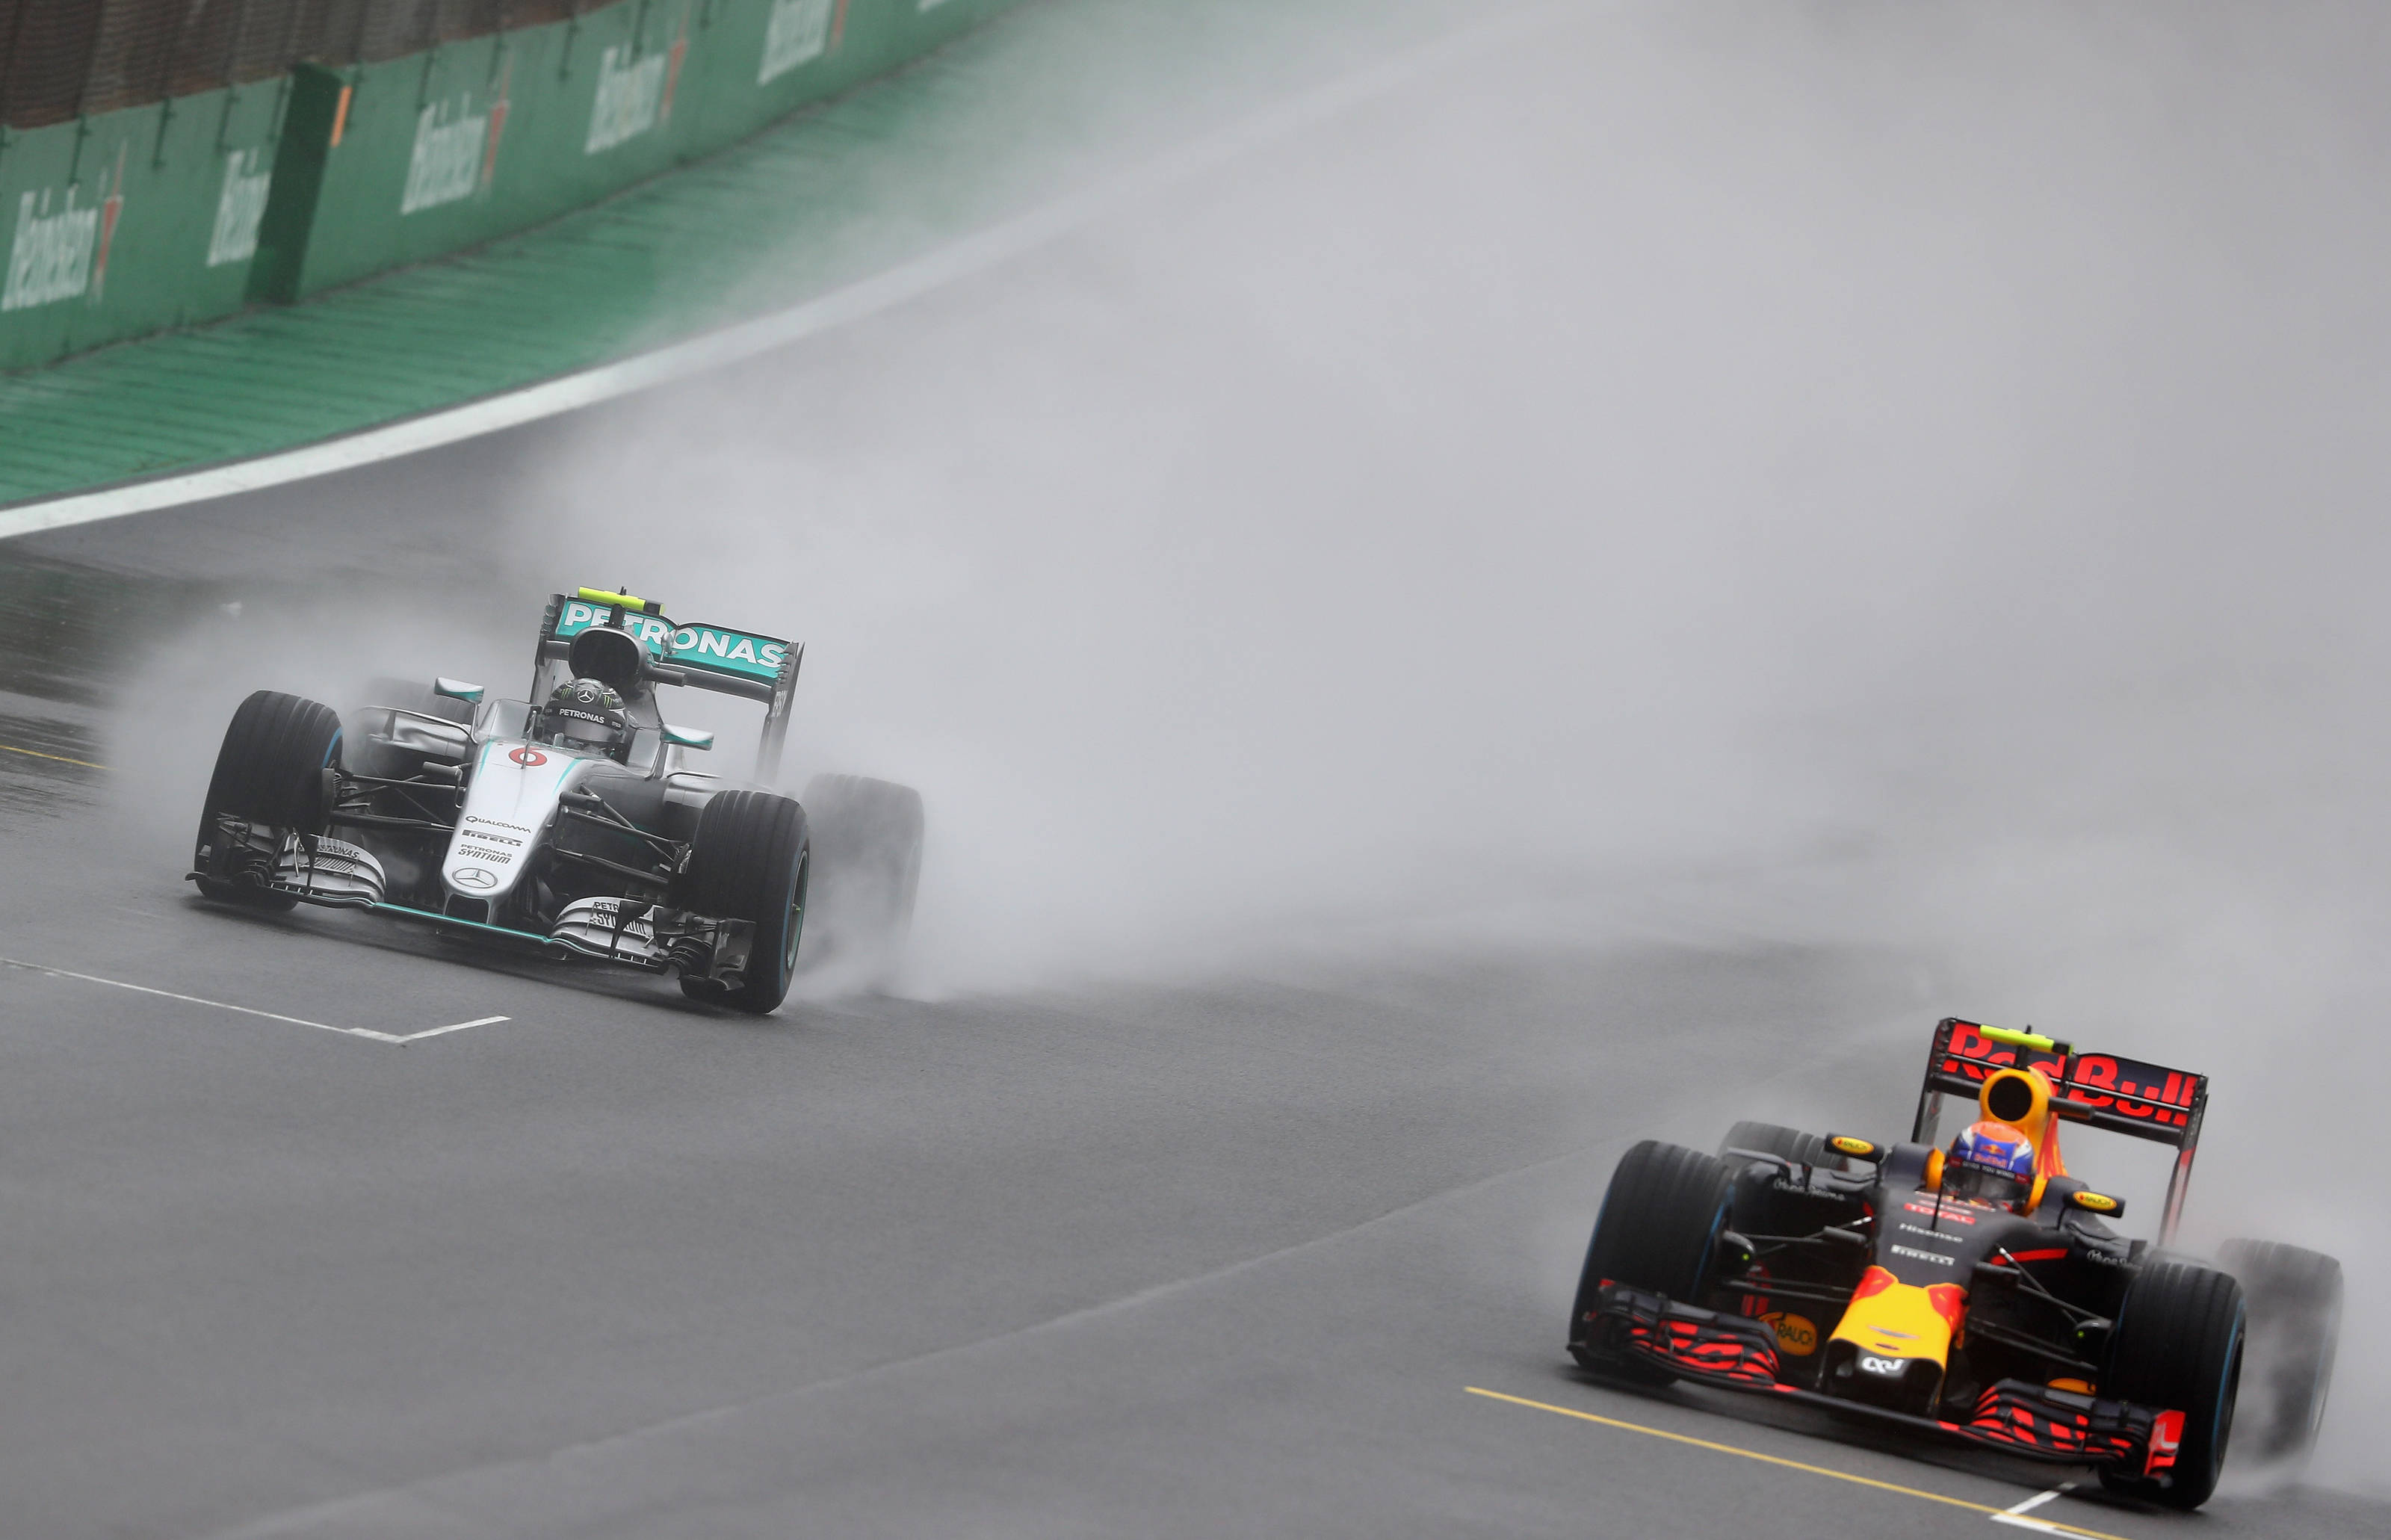 Max Verstappen at Interlagos